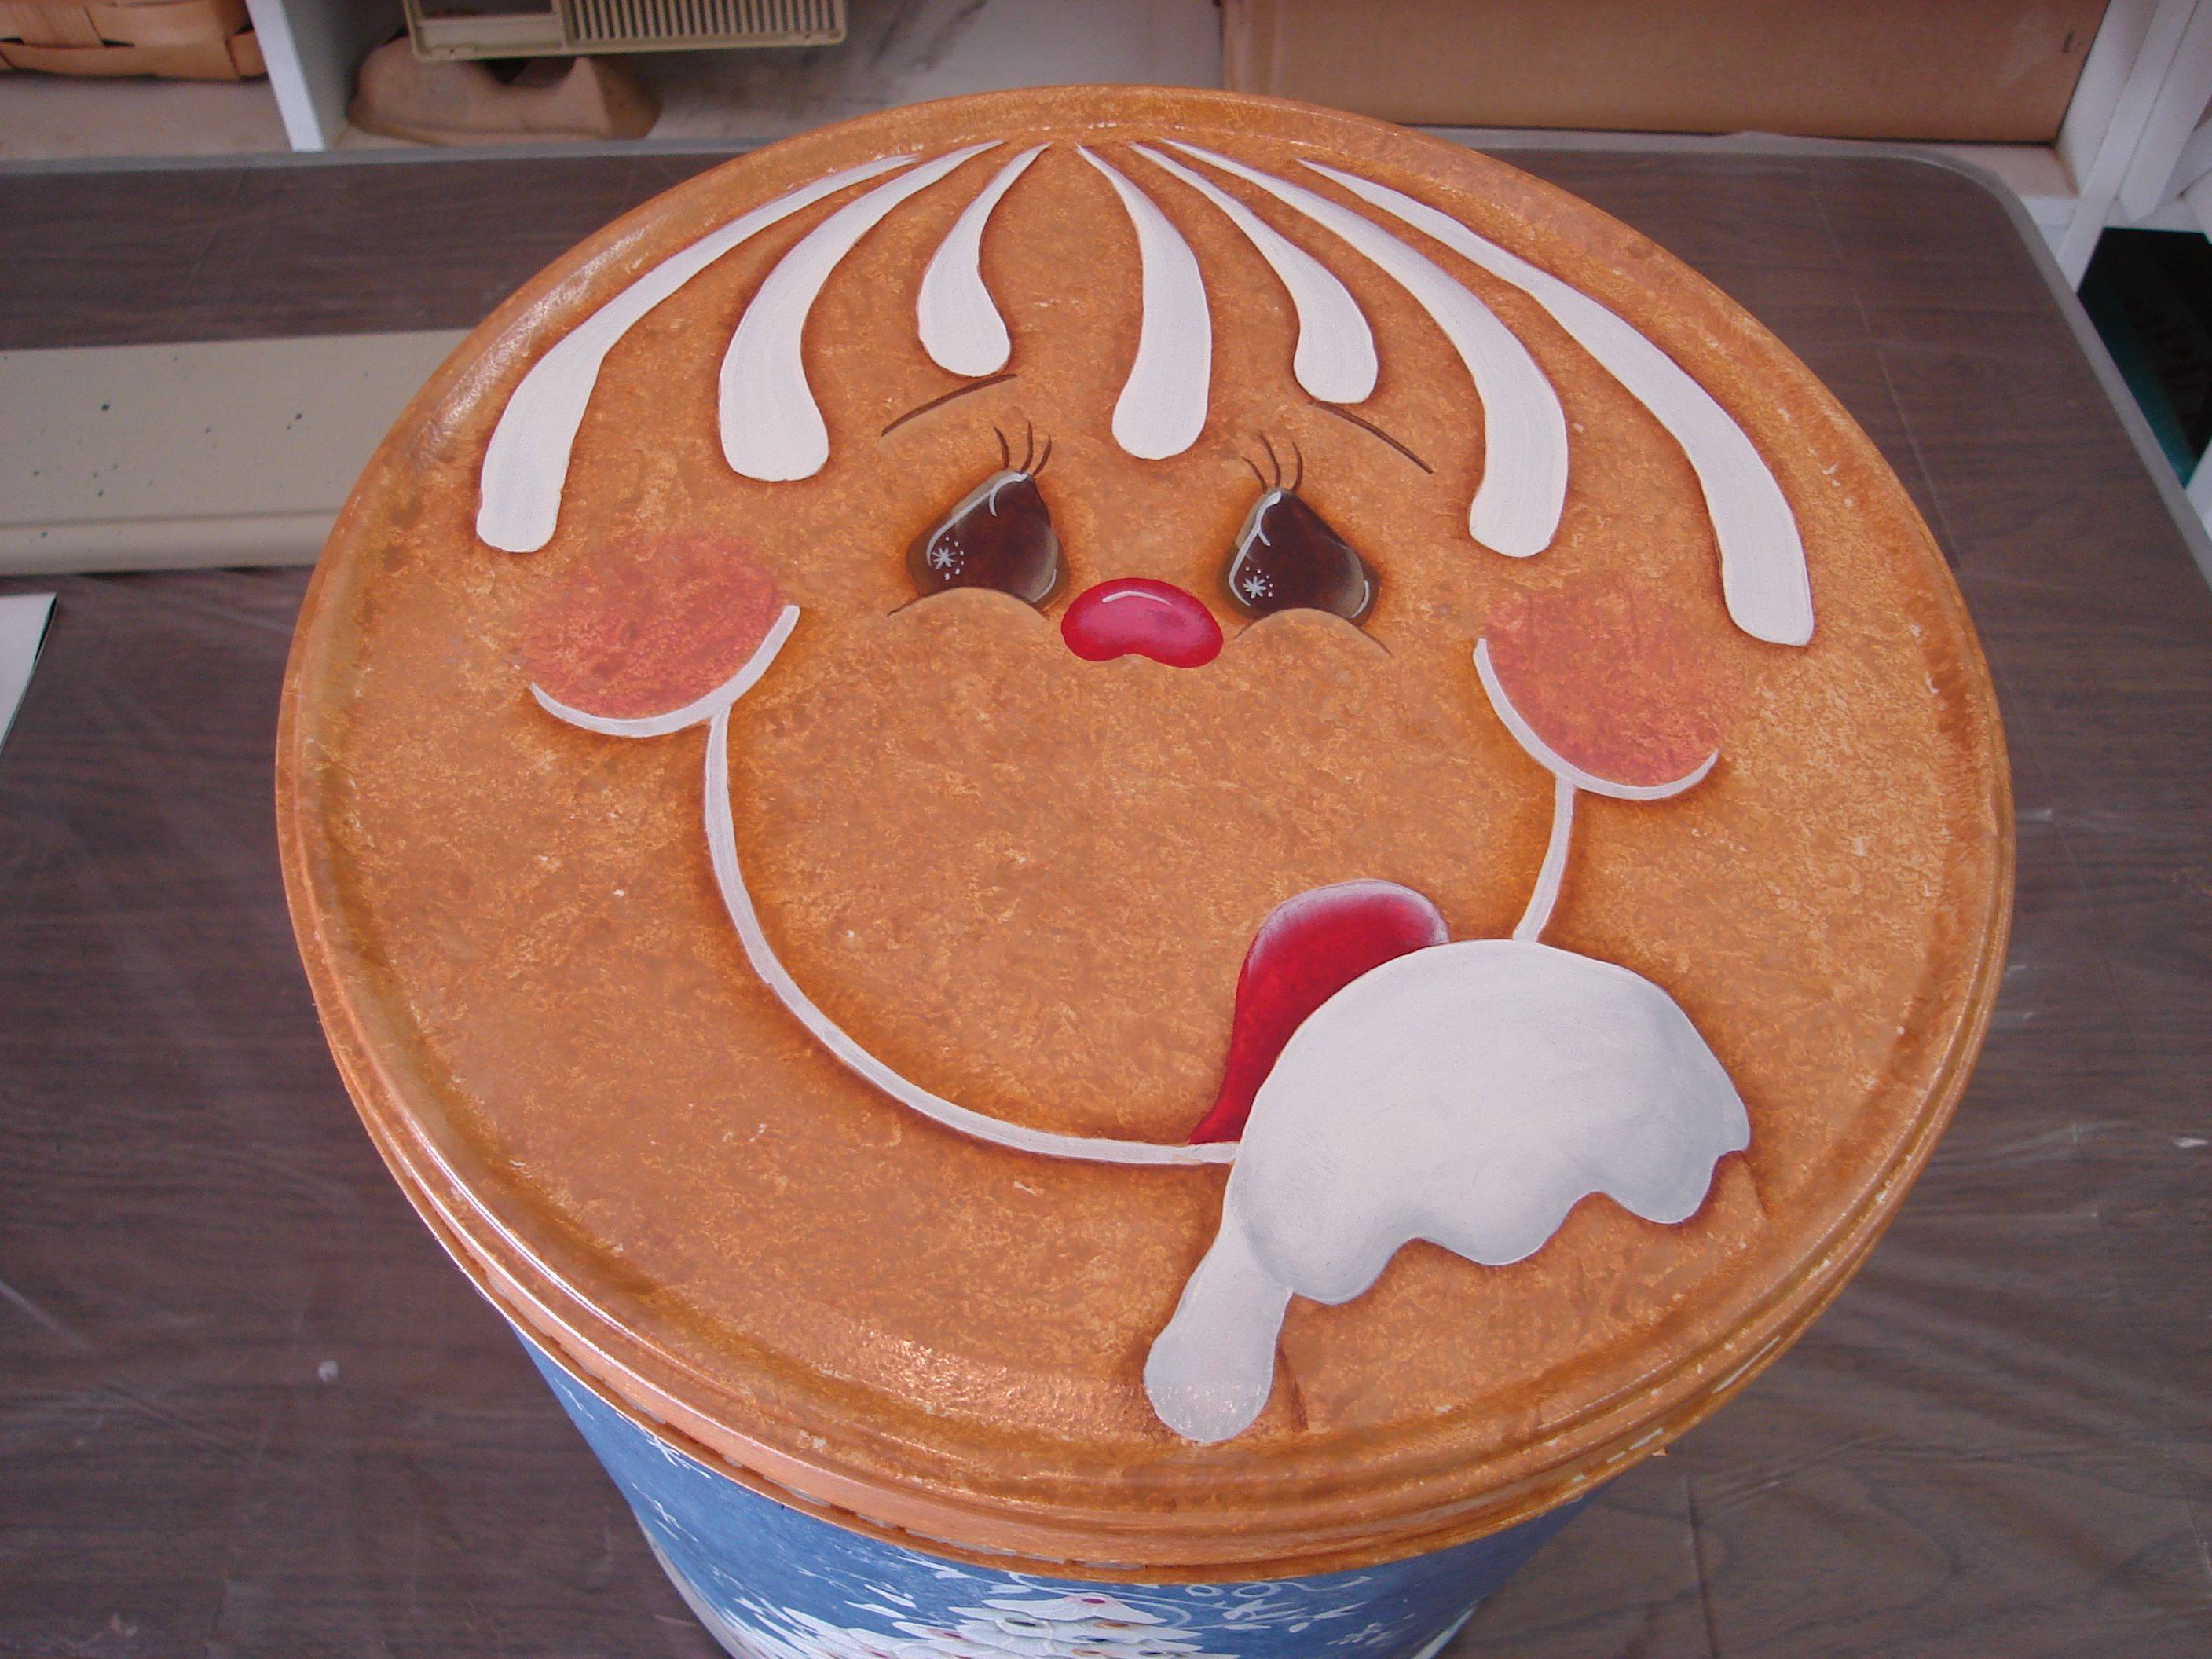 This is a hand painted lid to a can that can be filled with goodies to give family, friends, or neighbors